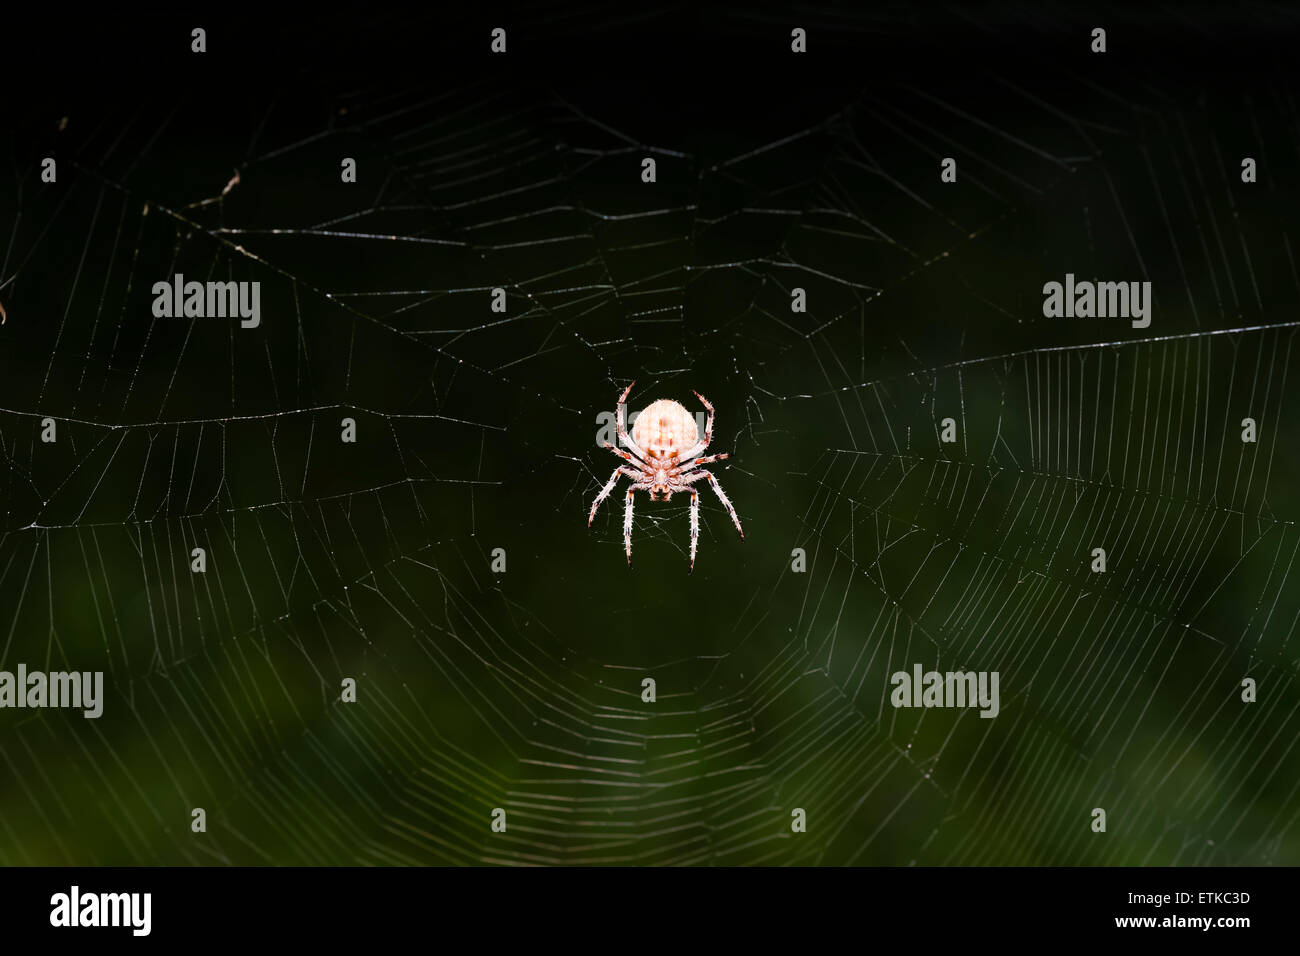 Spider at night. - Stock Image